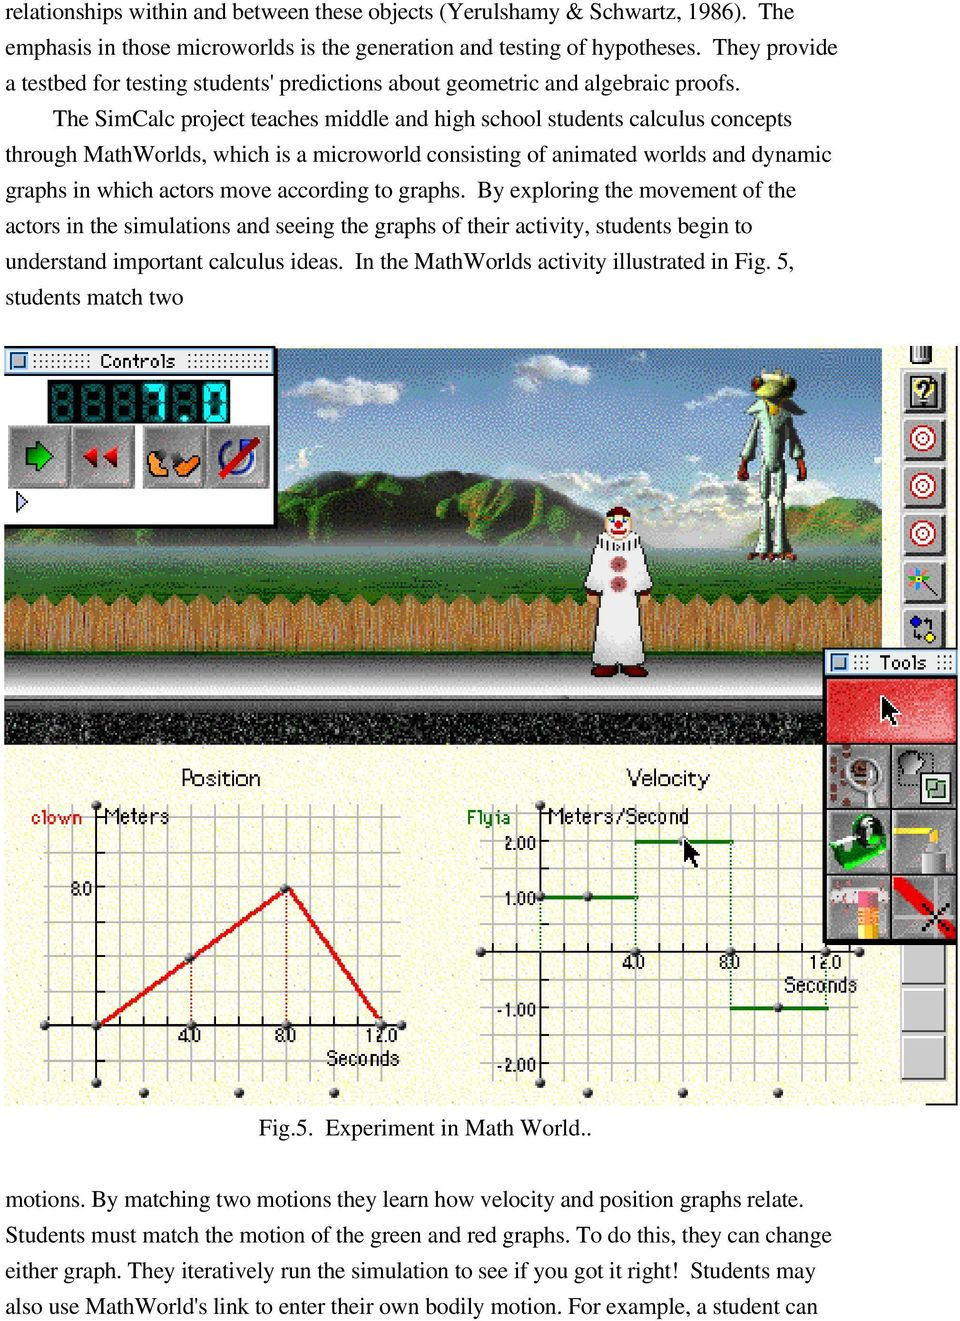 The SimCalc project teaches middle and high school students calculus concepts through MathWorlds, which is a microworld consisting of animated worlds and dynamic graphs in which actors move according